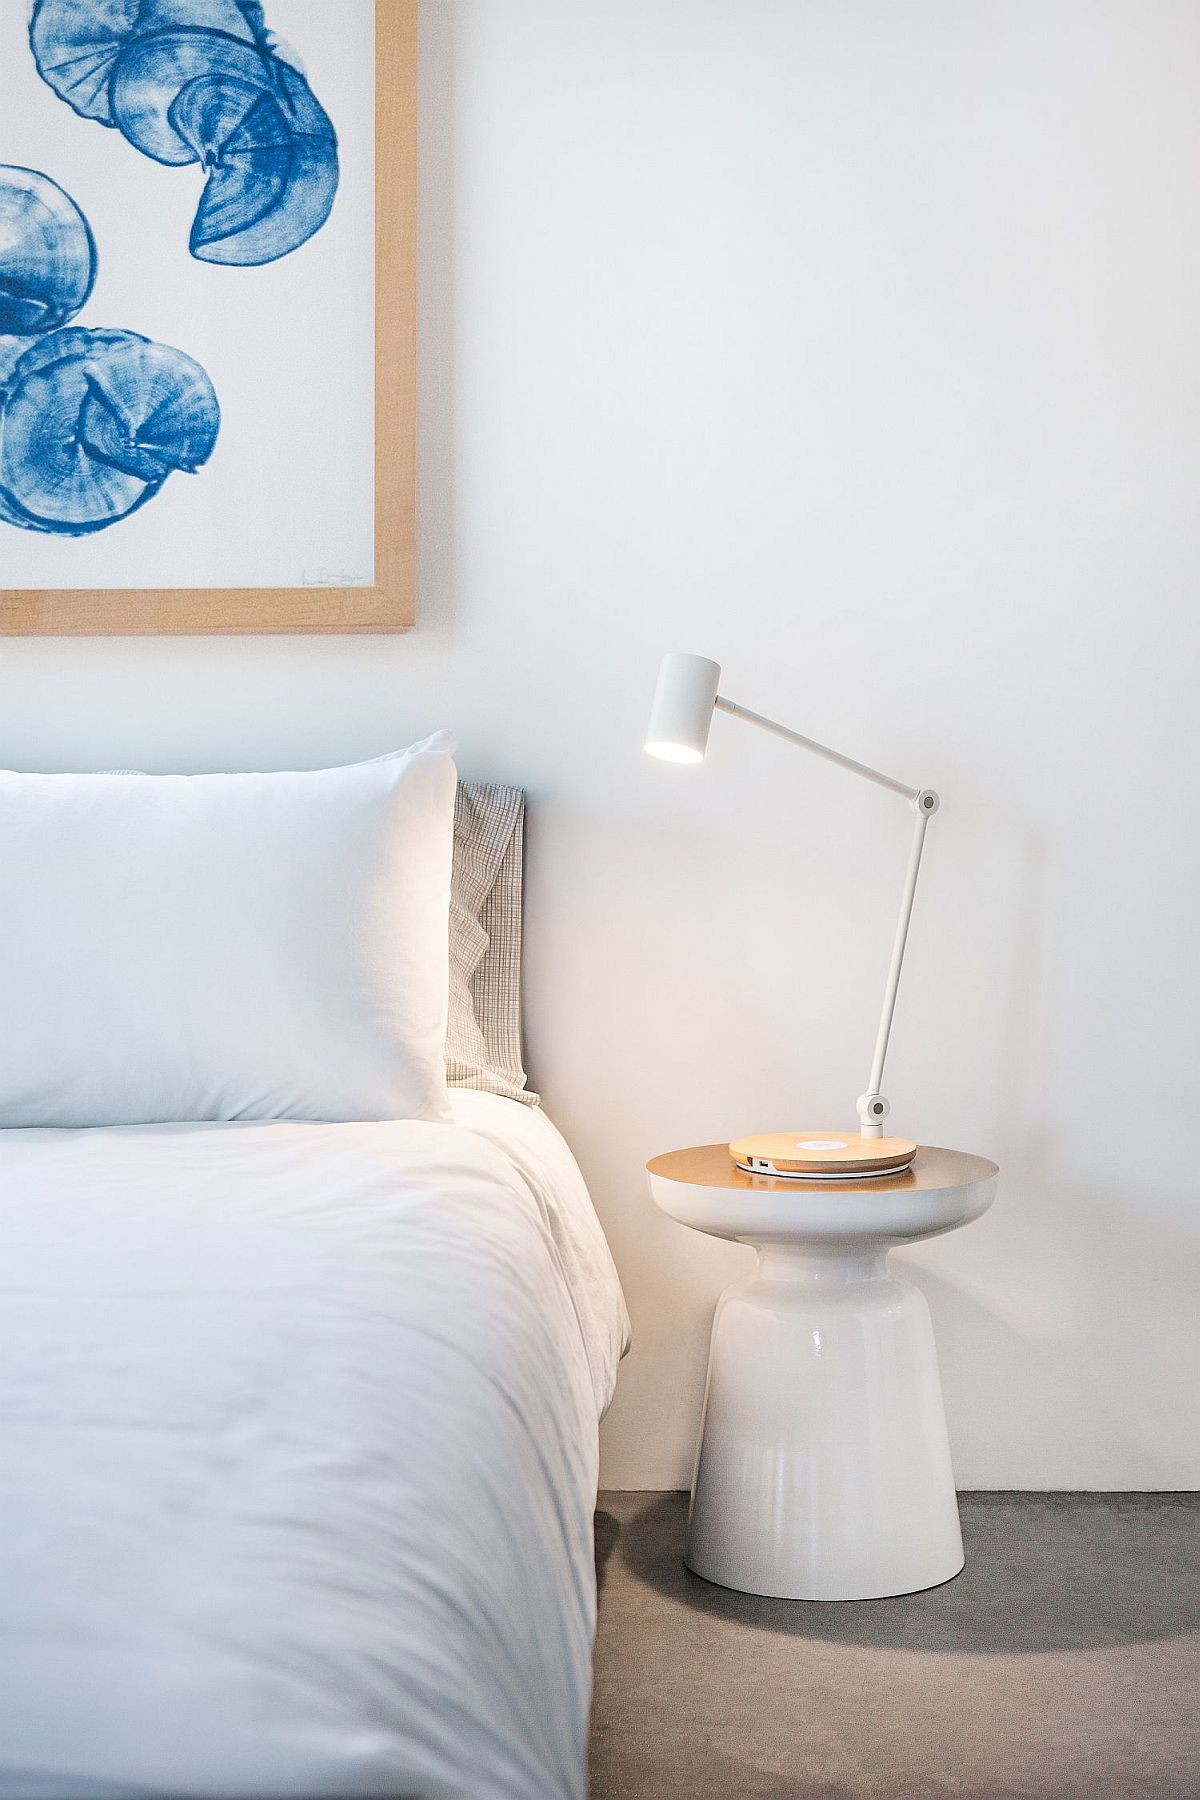 Contemporary side table in white from West Elm along with a cool table lamp